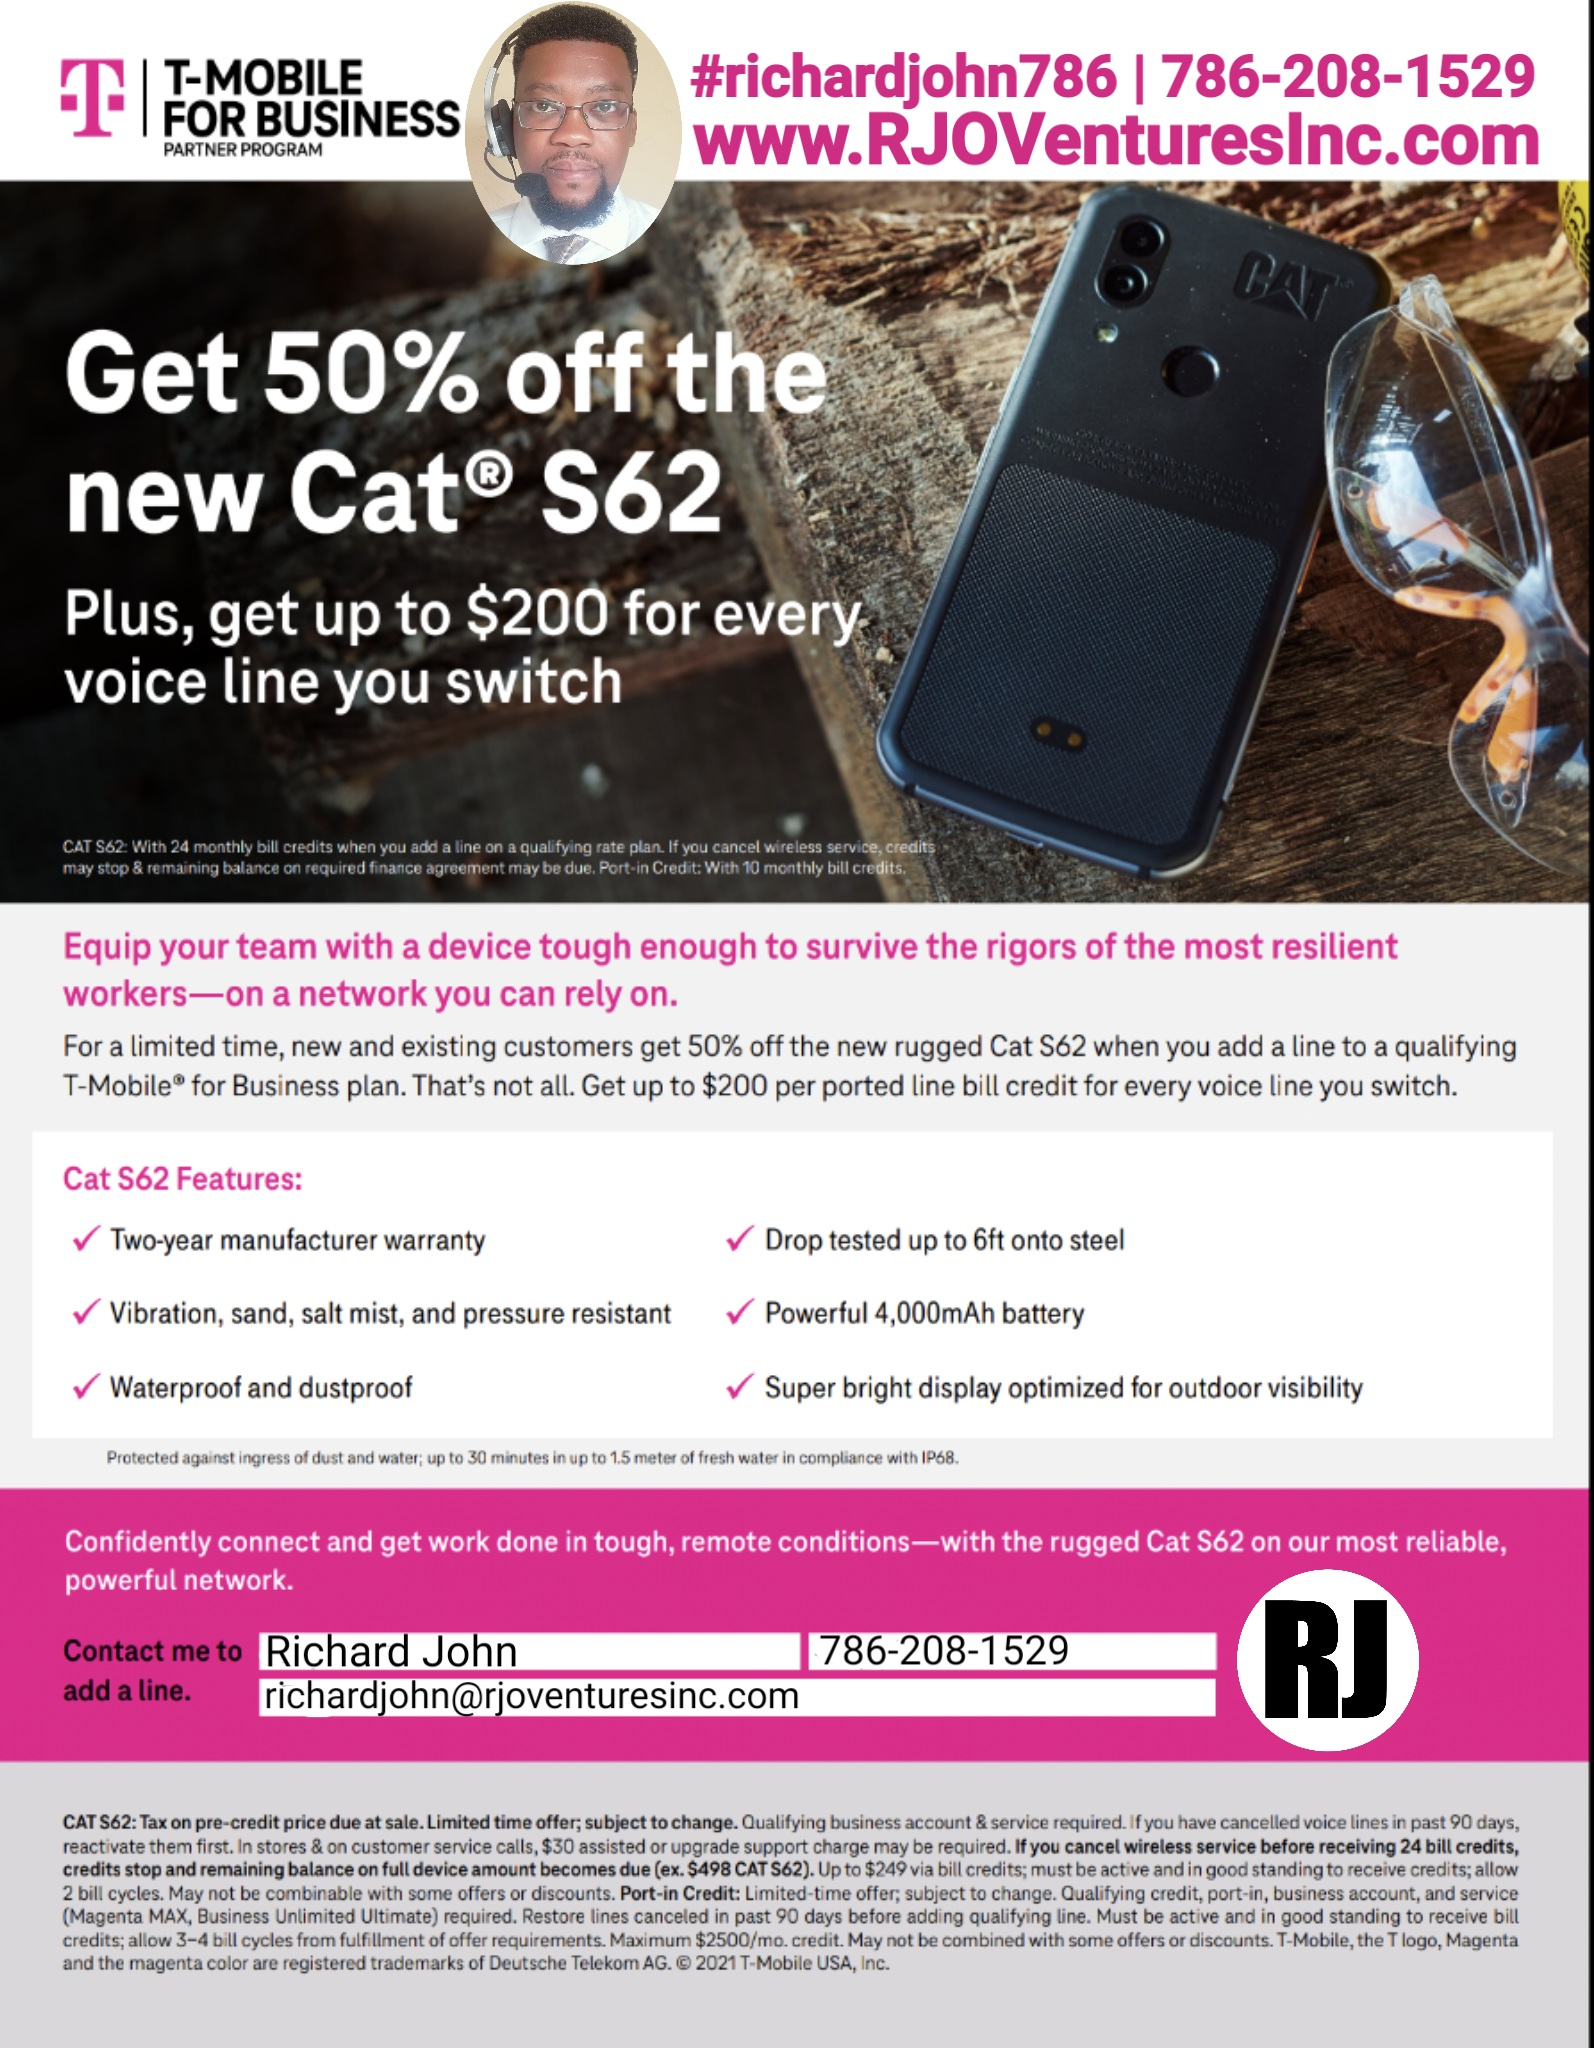 T-Mobile: Get 50% off the new Cat S62. Plus, get up to $200 for every voice line you switch [RJOVenturesInc.com]